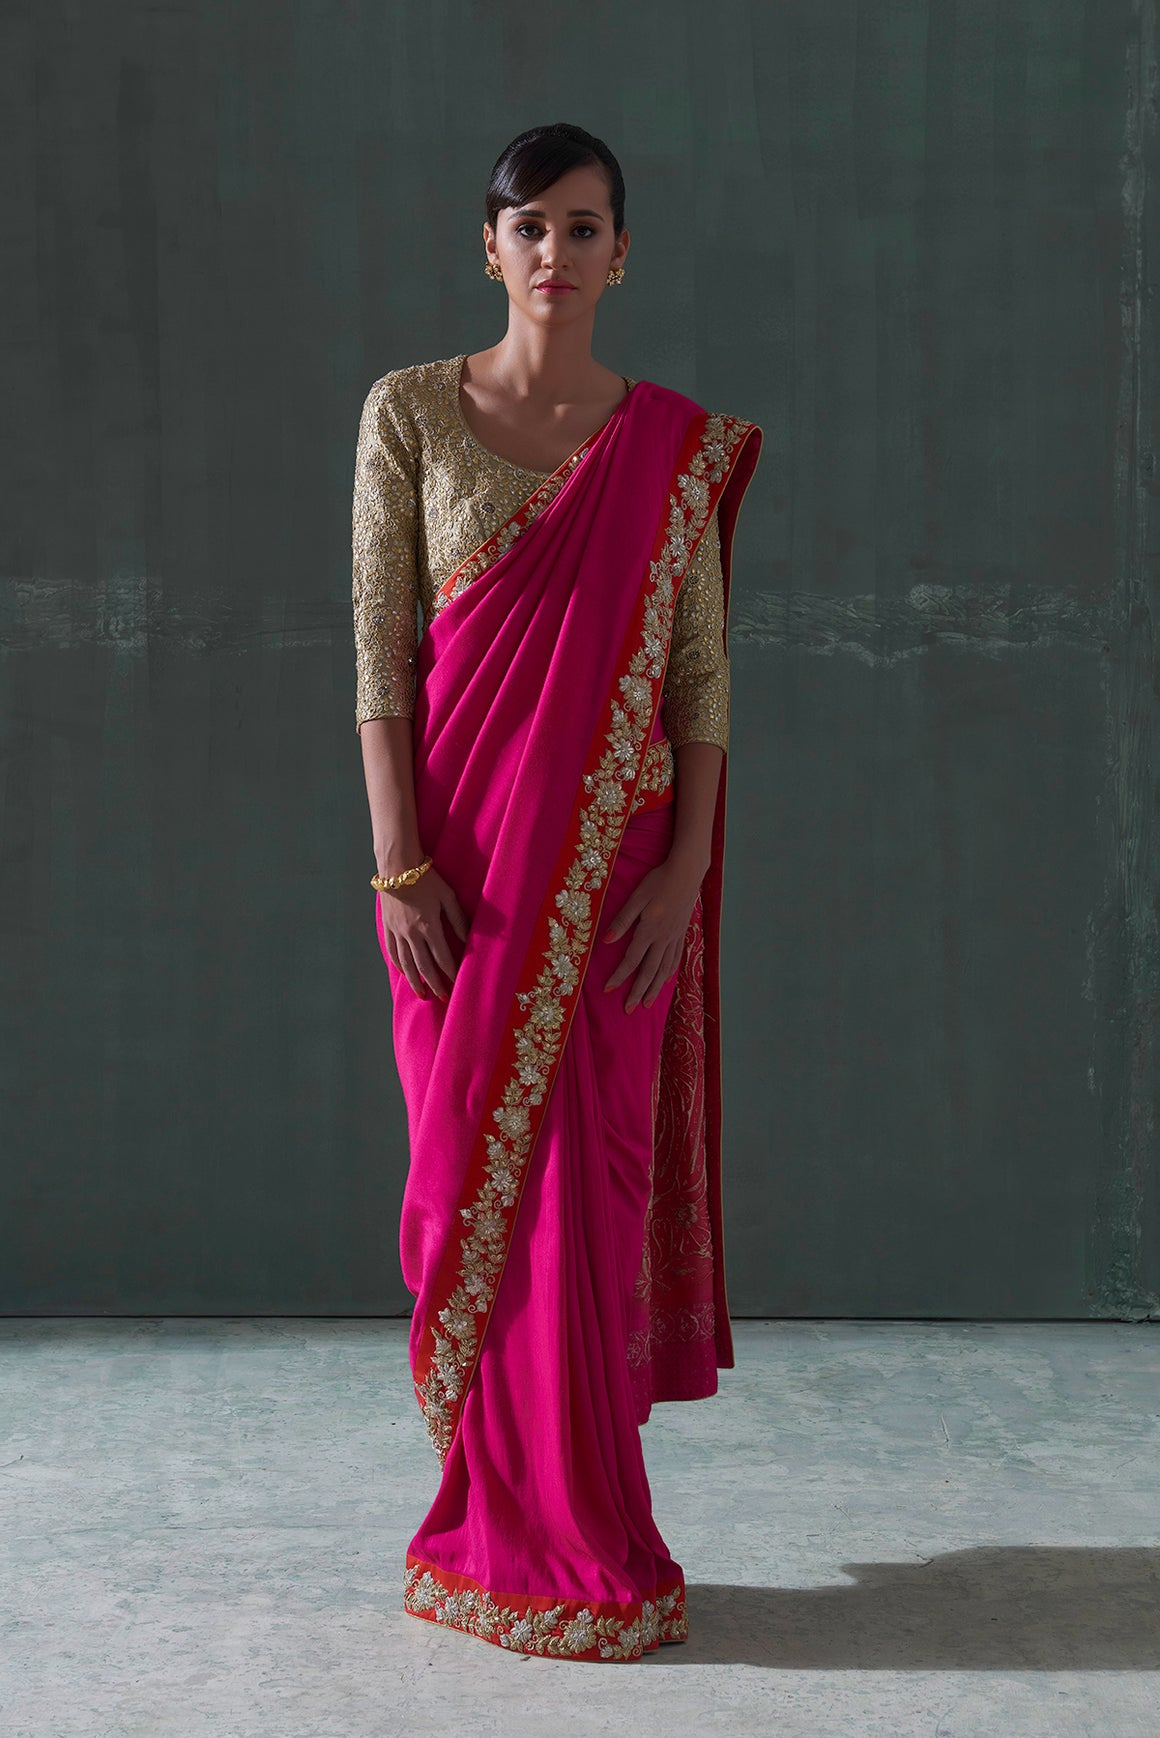 The Pharo - Clothcrafte, Saree